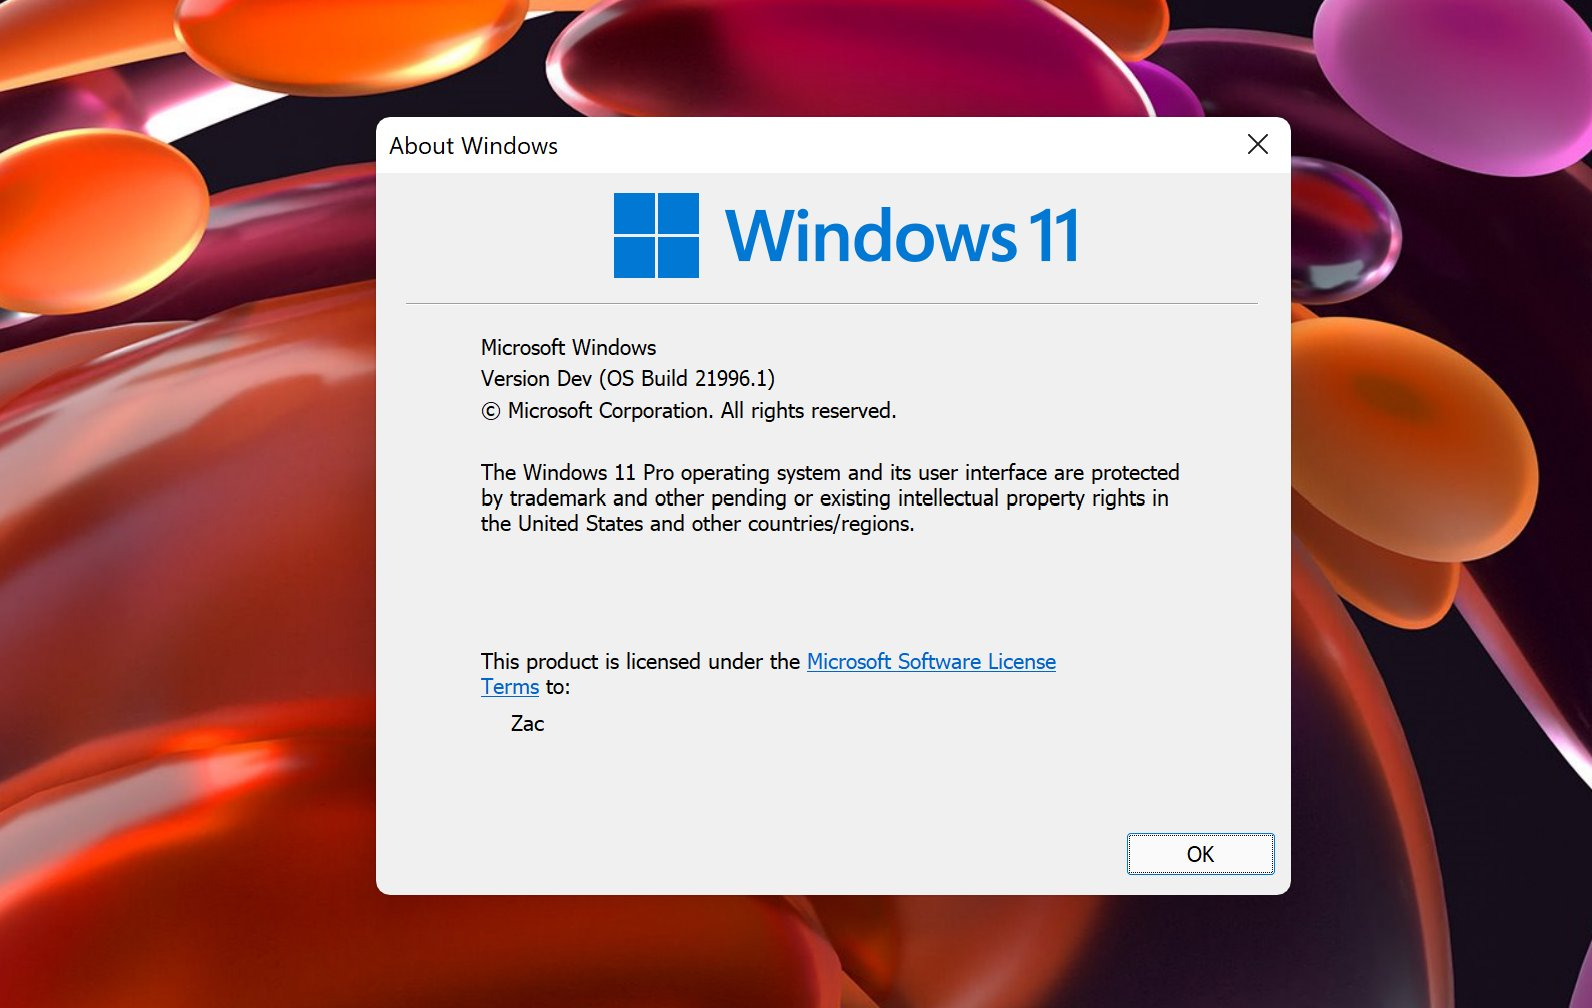 New Leaks For Windows 11 Reveals New UI, Start Menu, Startup Sound And More